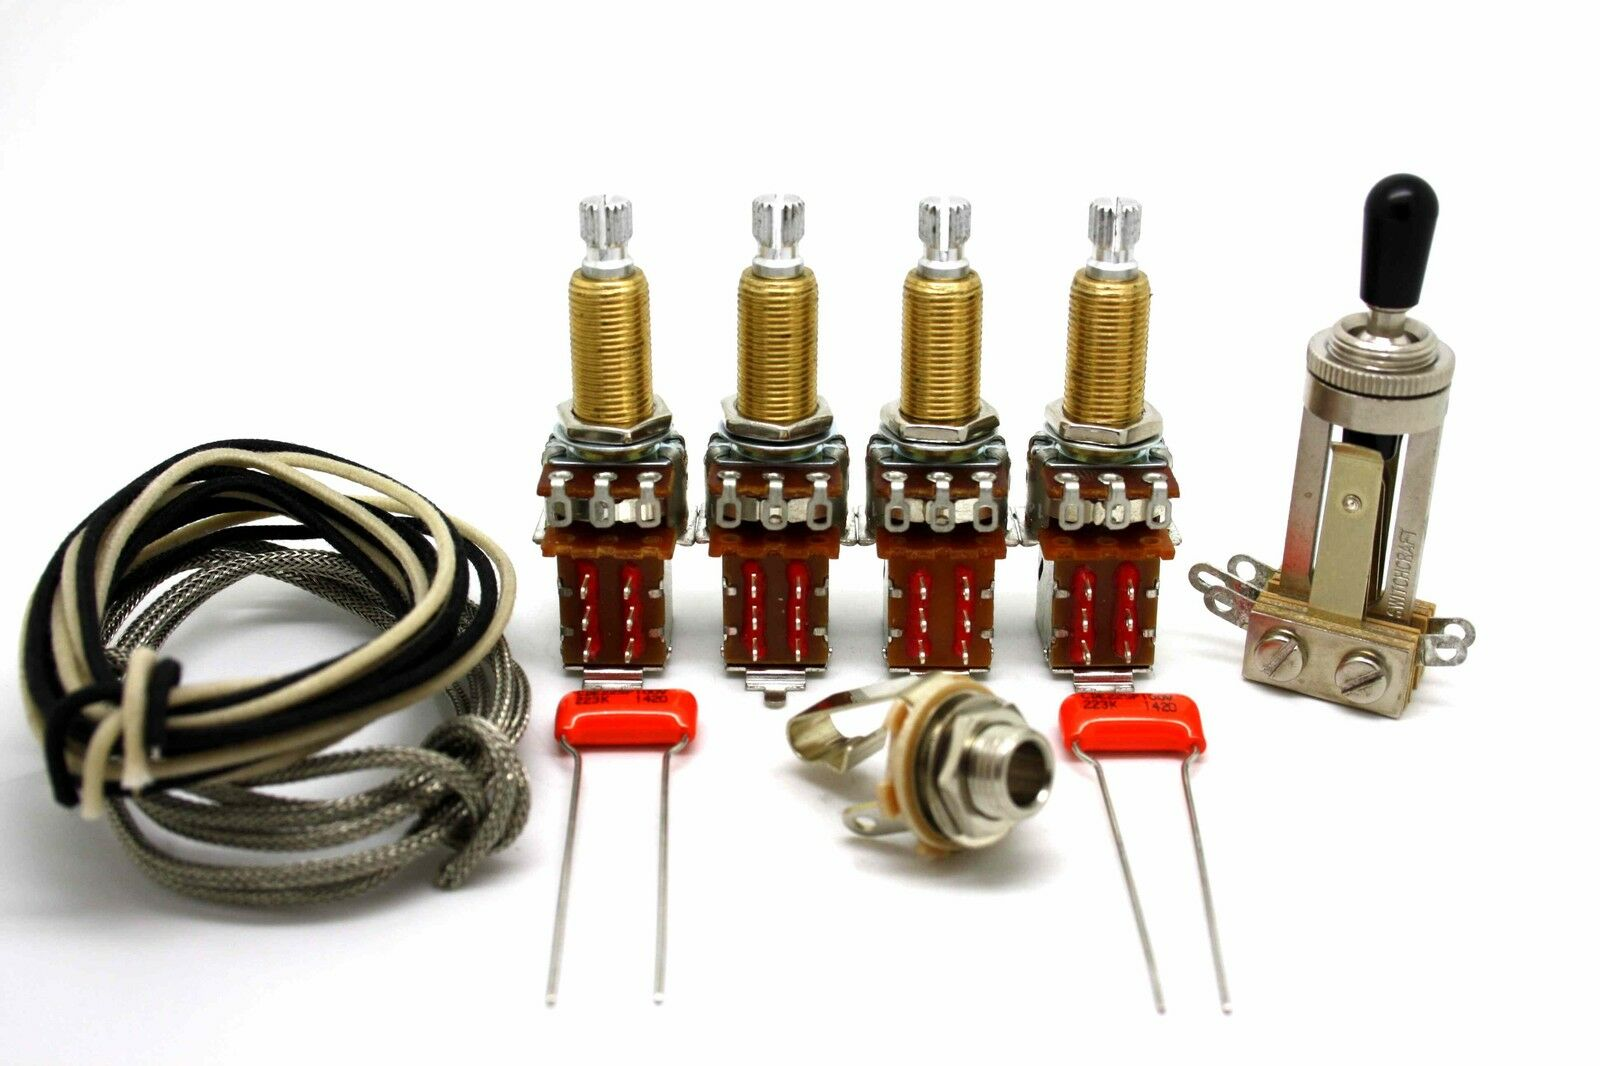 Deluxe Vintage Wiring Kit Push Pull Long Shaft Jimmy Page For Gibson A Les Paul 1 Sur 1seulement 4 Disponibles Voir Plus